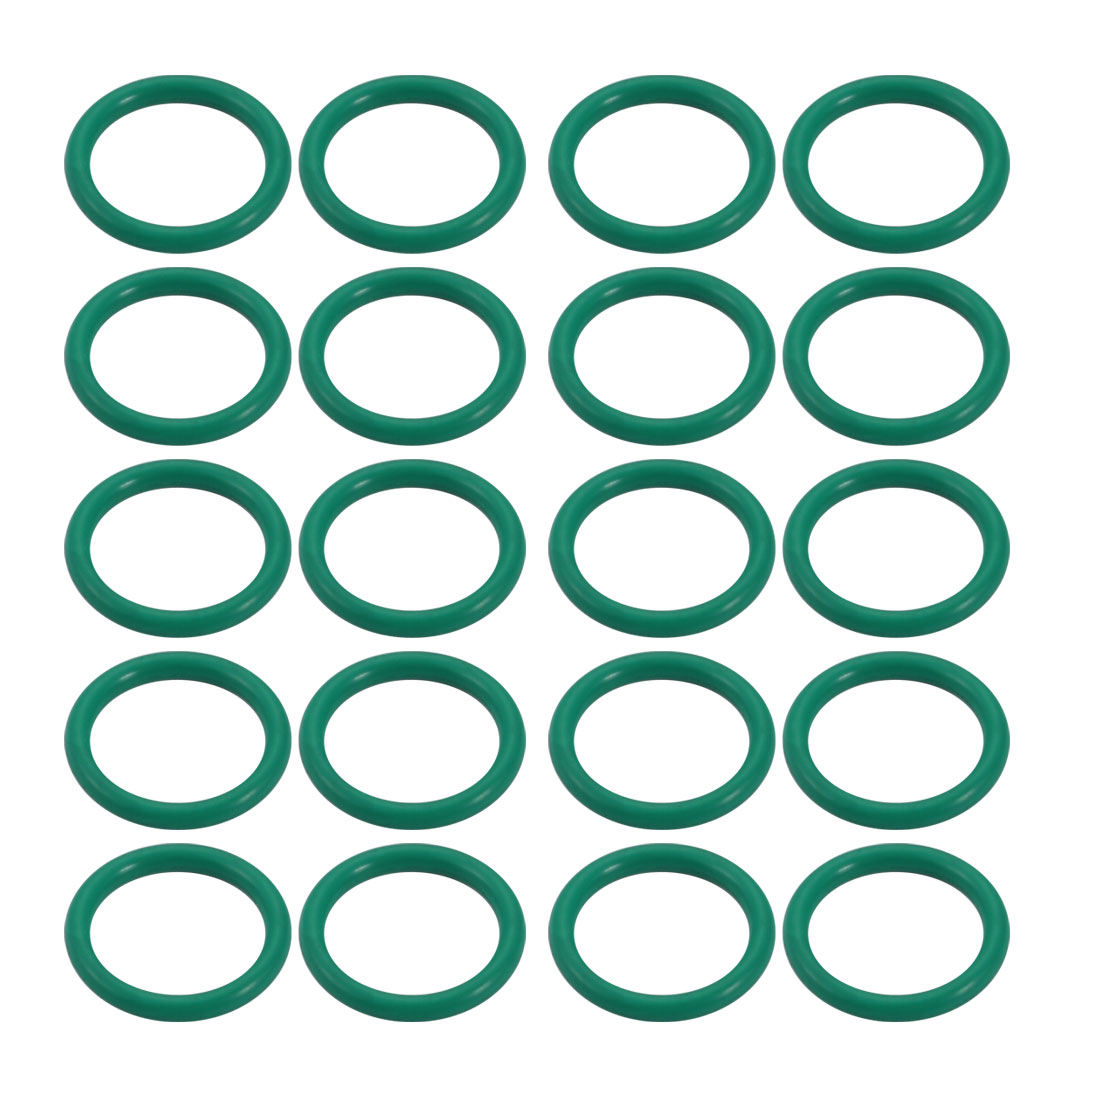 20pcs 12mm x 1.5mm Size Mechanical Rubber O Ring Oil Seal Gaskets Green